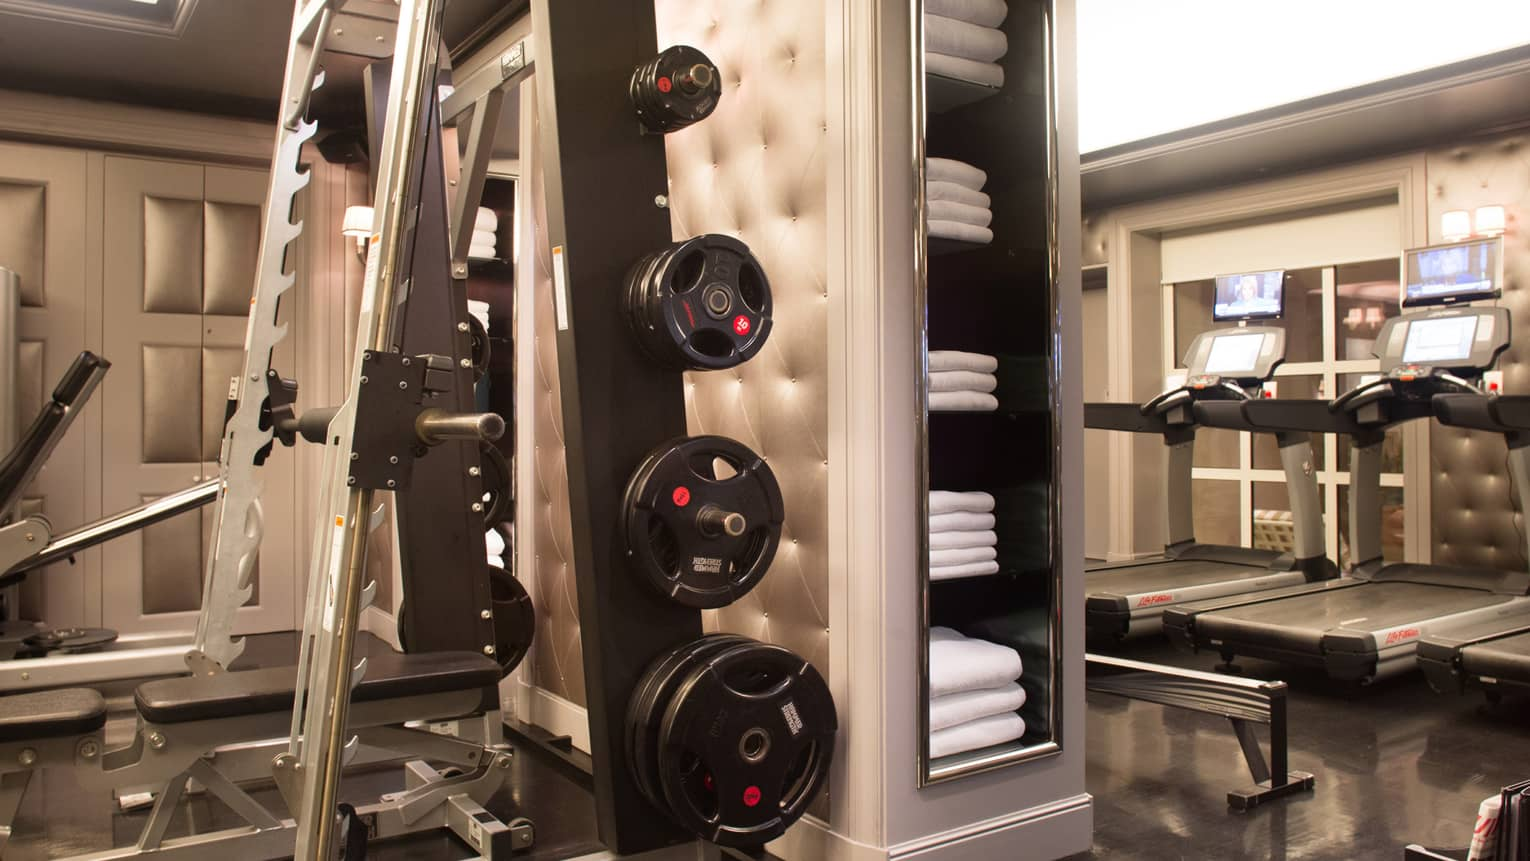 Fitness Centre weight press, barbells by pillar, shelves with white towels